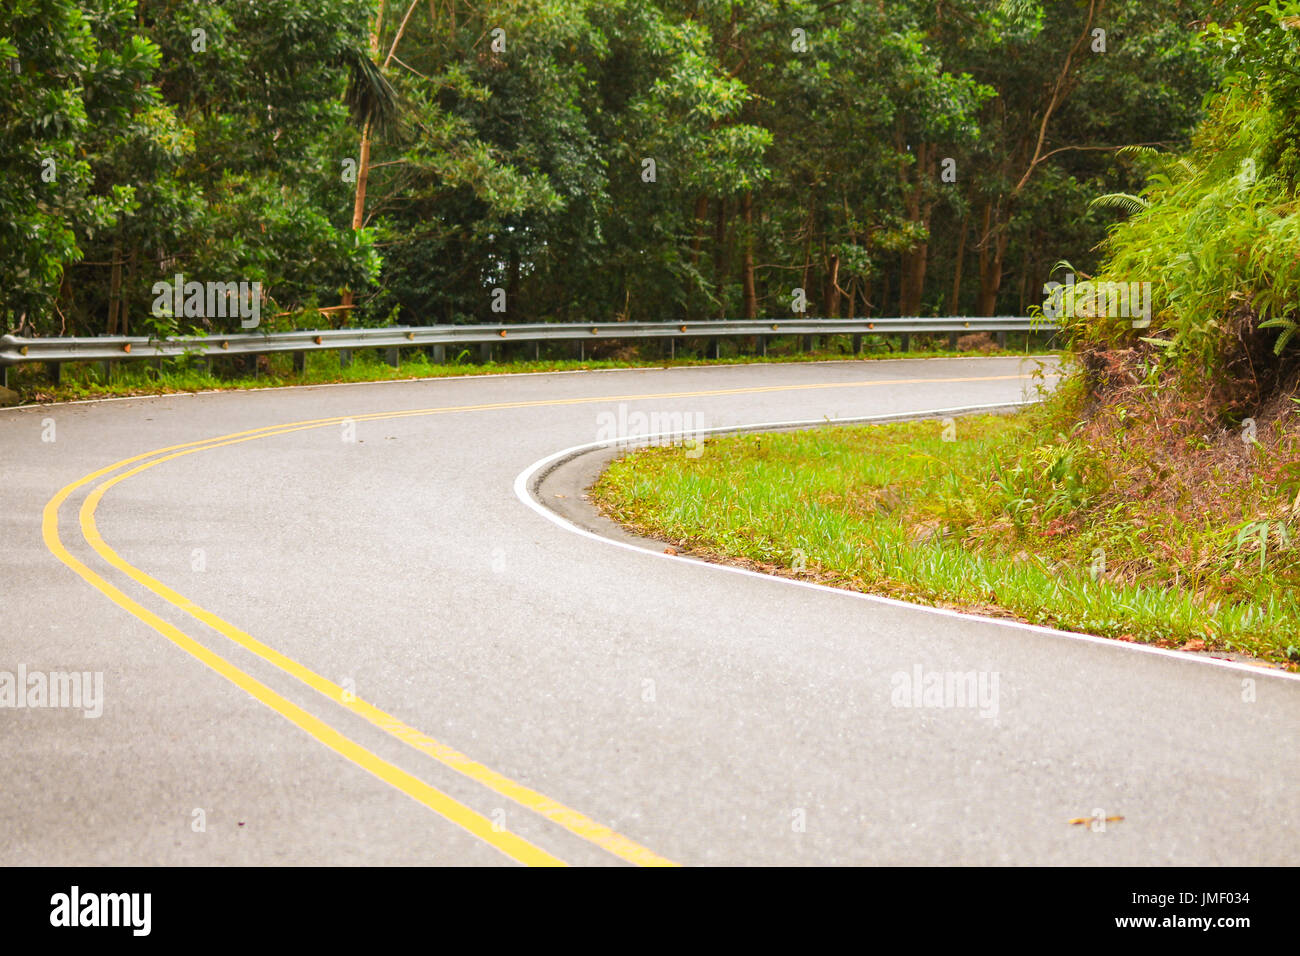 Bend on the road - Stock Image